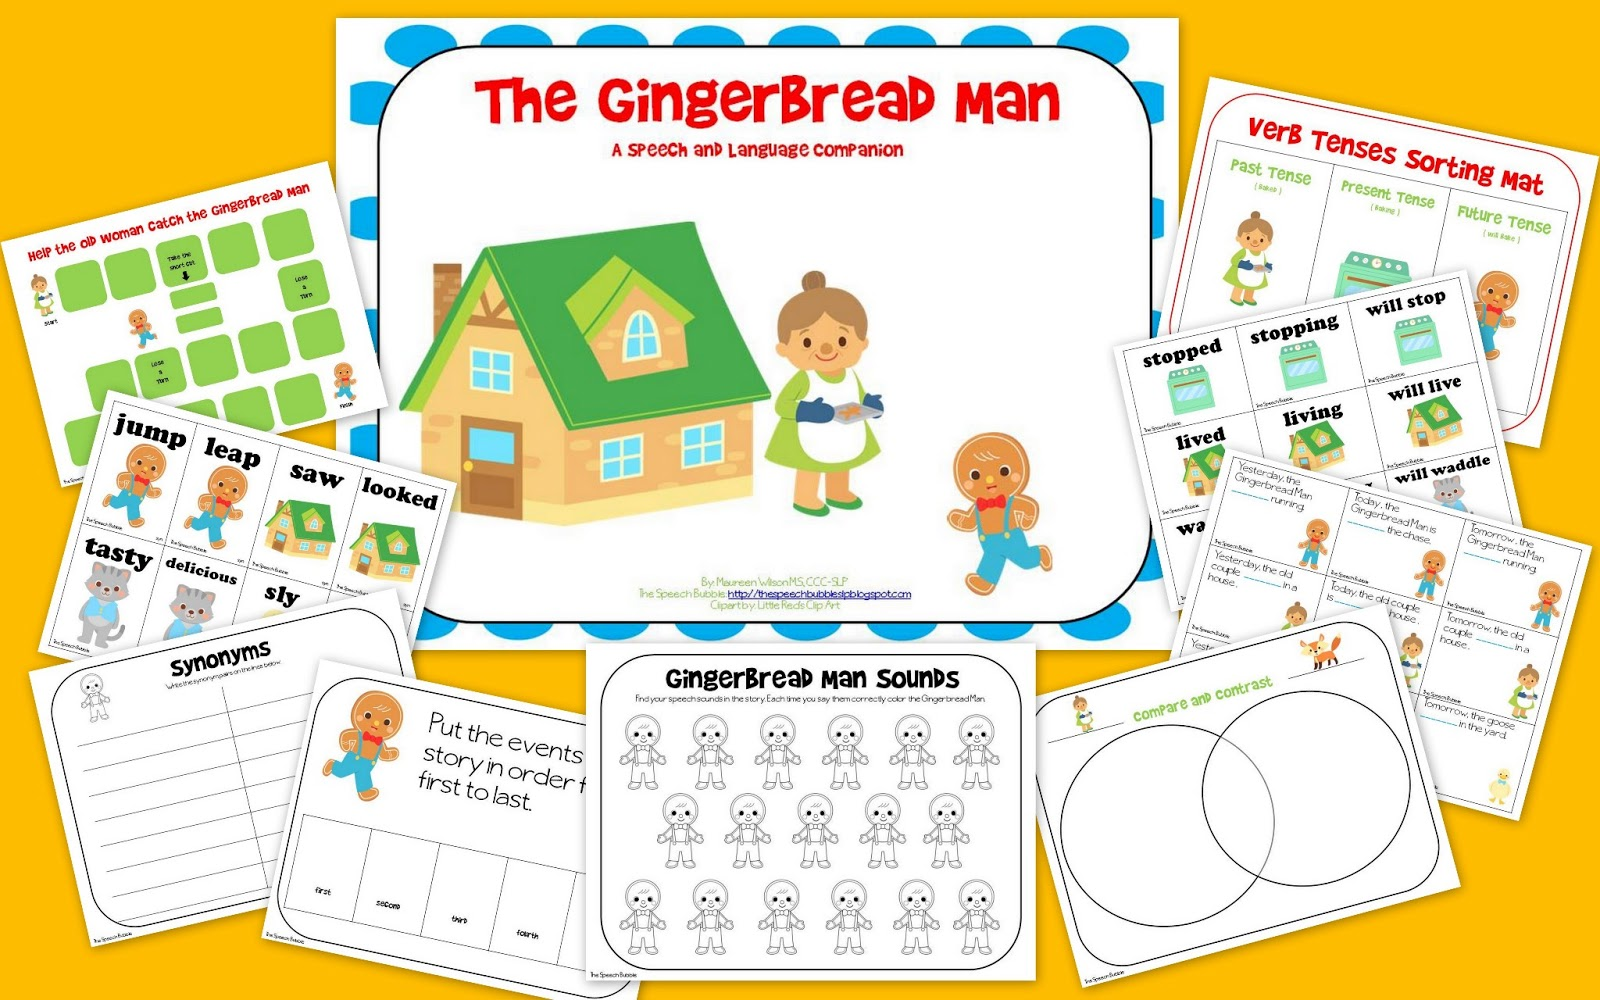 The Gingerbread Man Speech And Language Book Companion